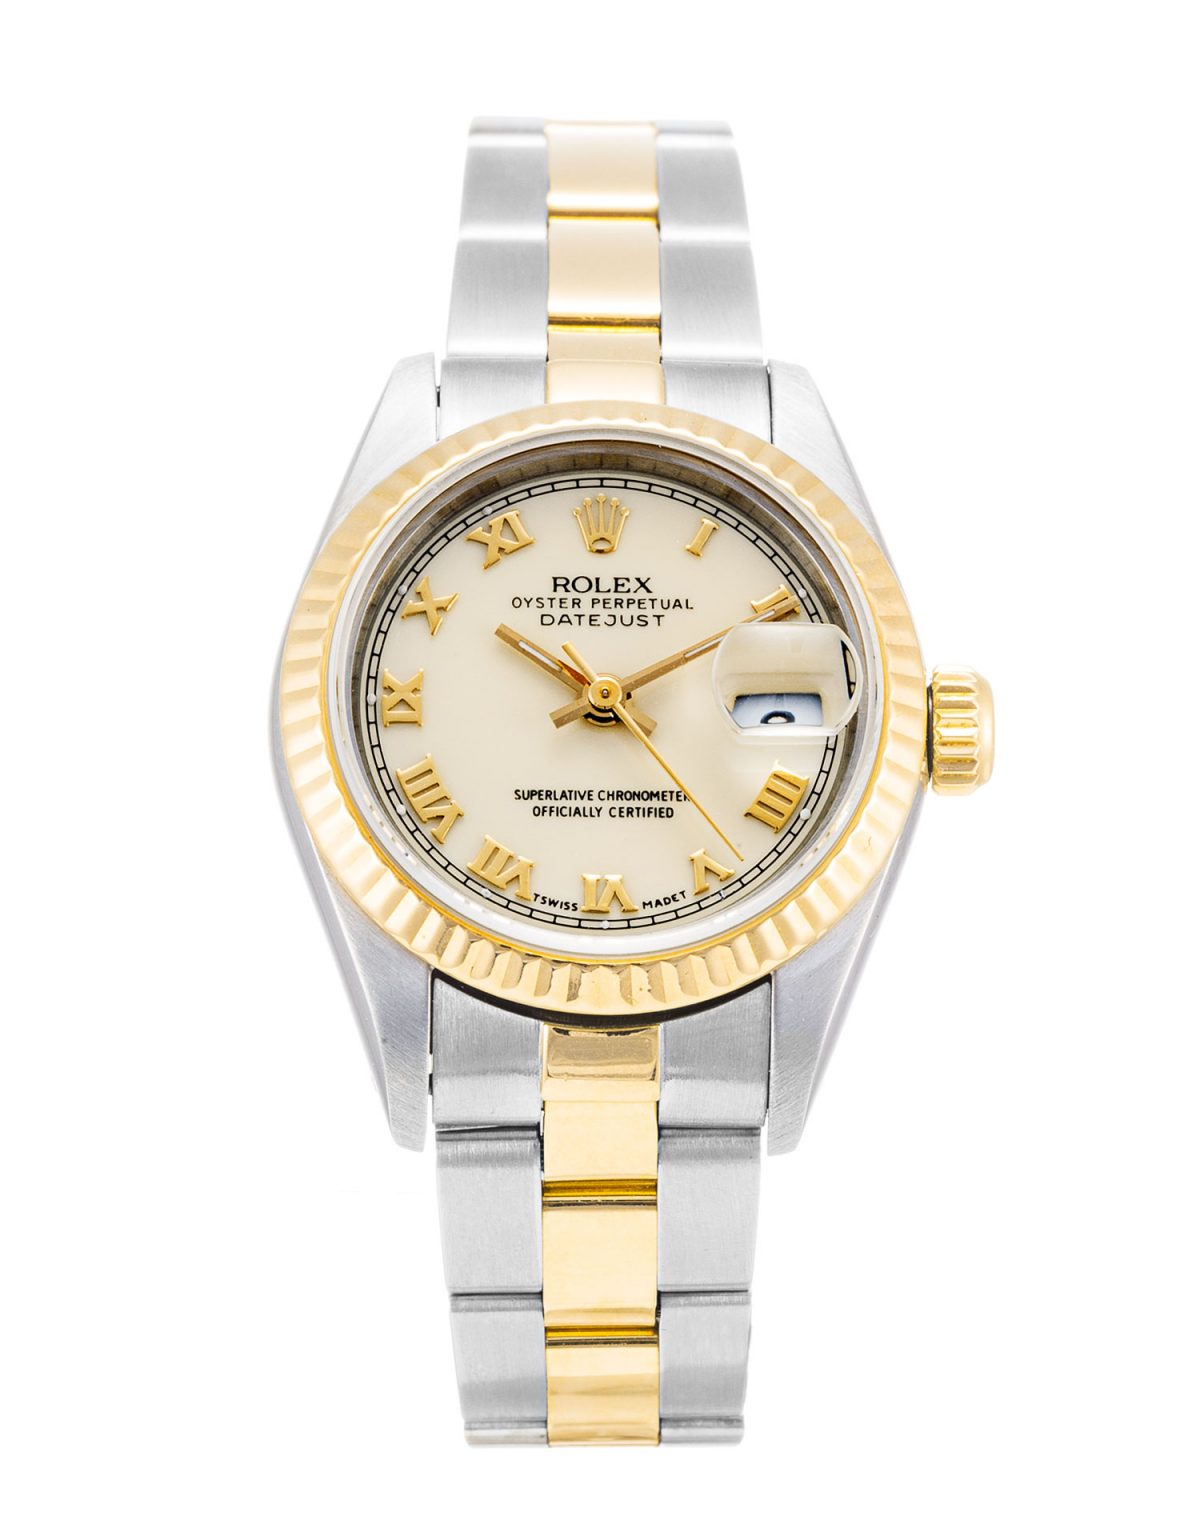 Most Poplar Rolex Datejust with Typical Features